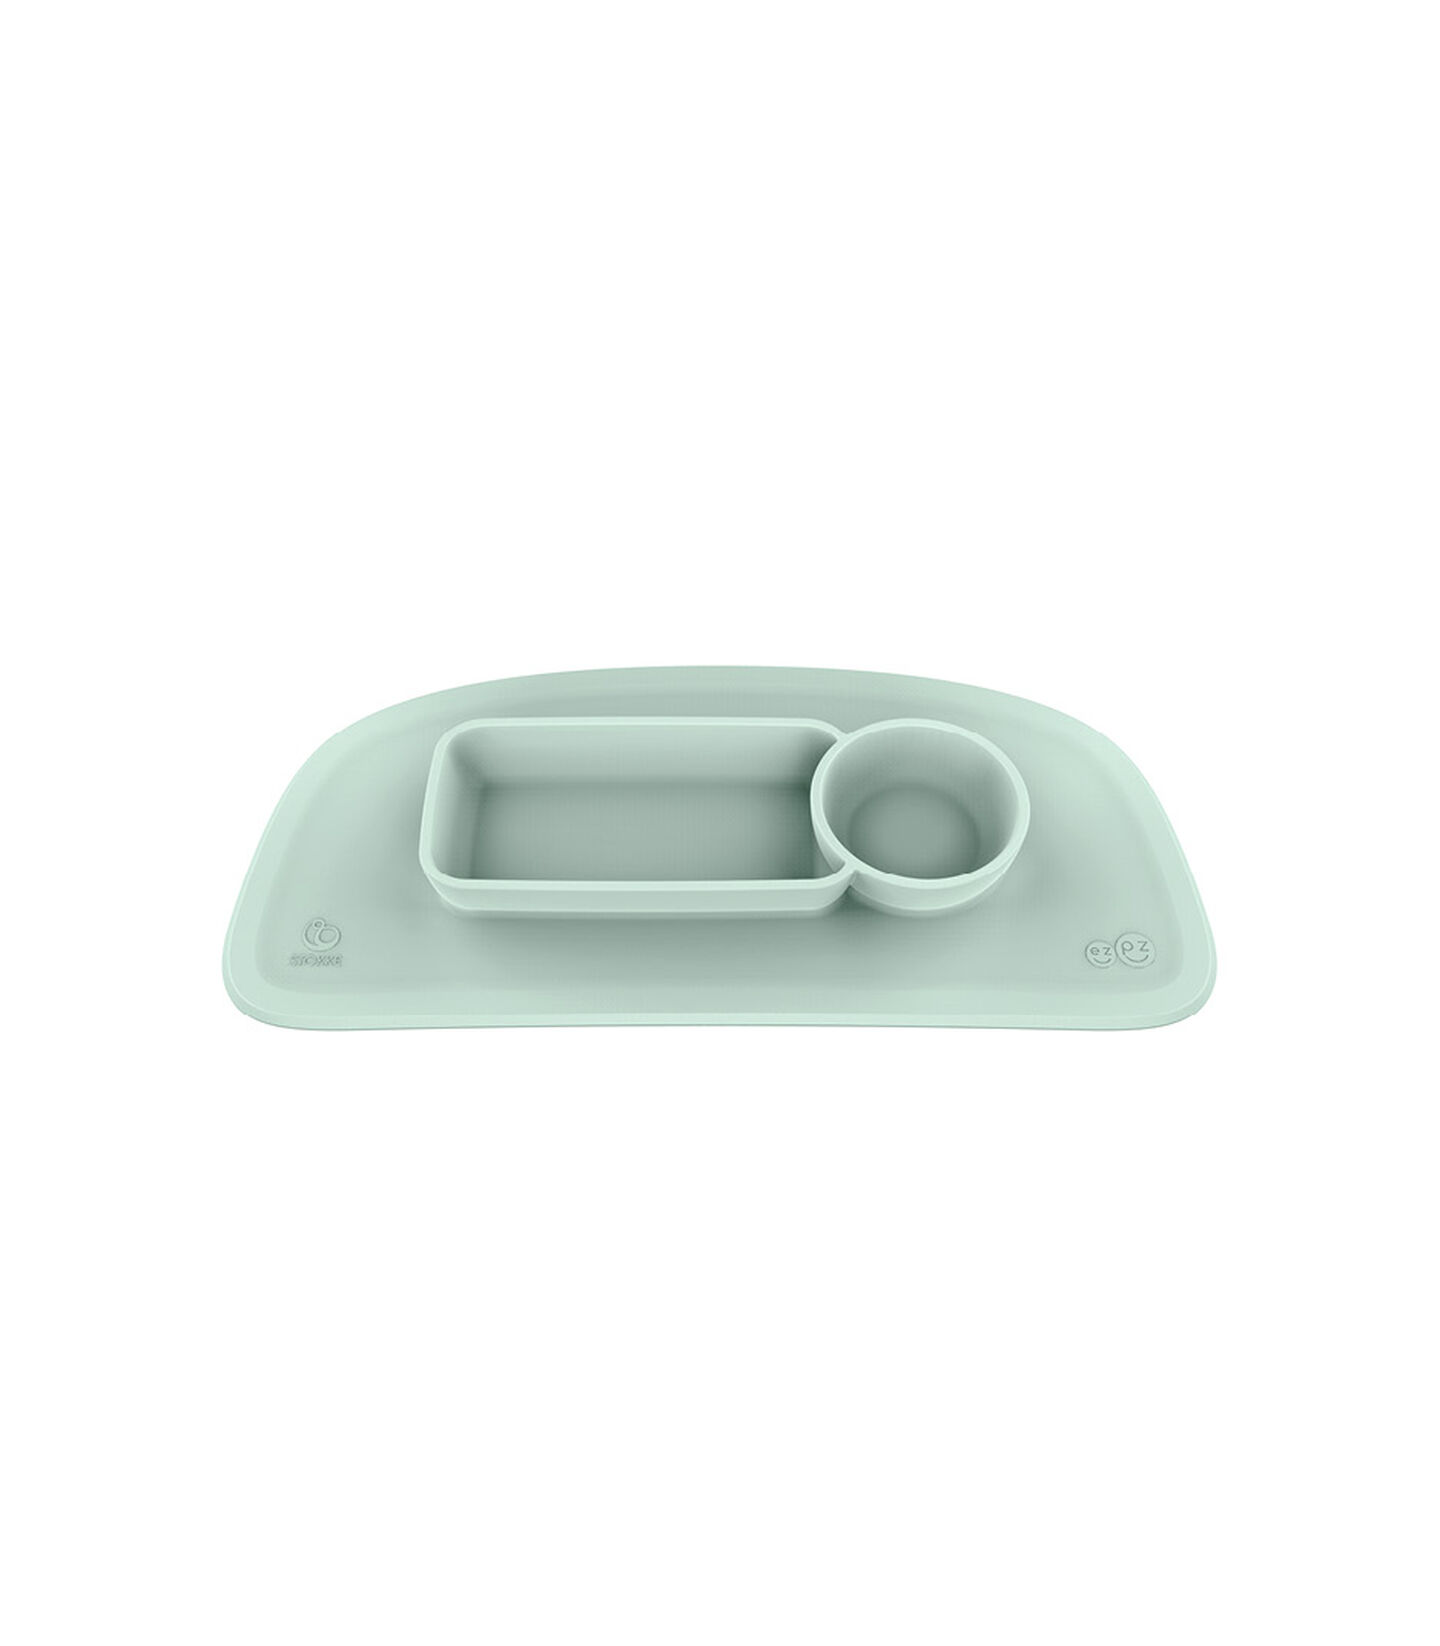 ezpz™ by Stokke™ placemat for Stokke® Tray Soft Mint, Soft Mint, mainview view 1